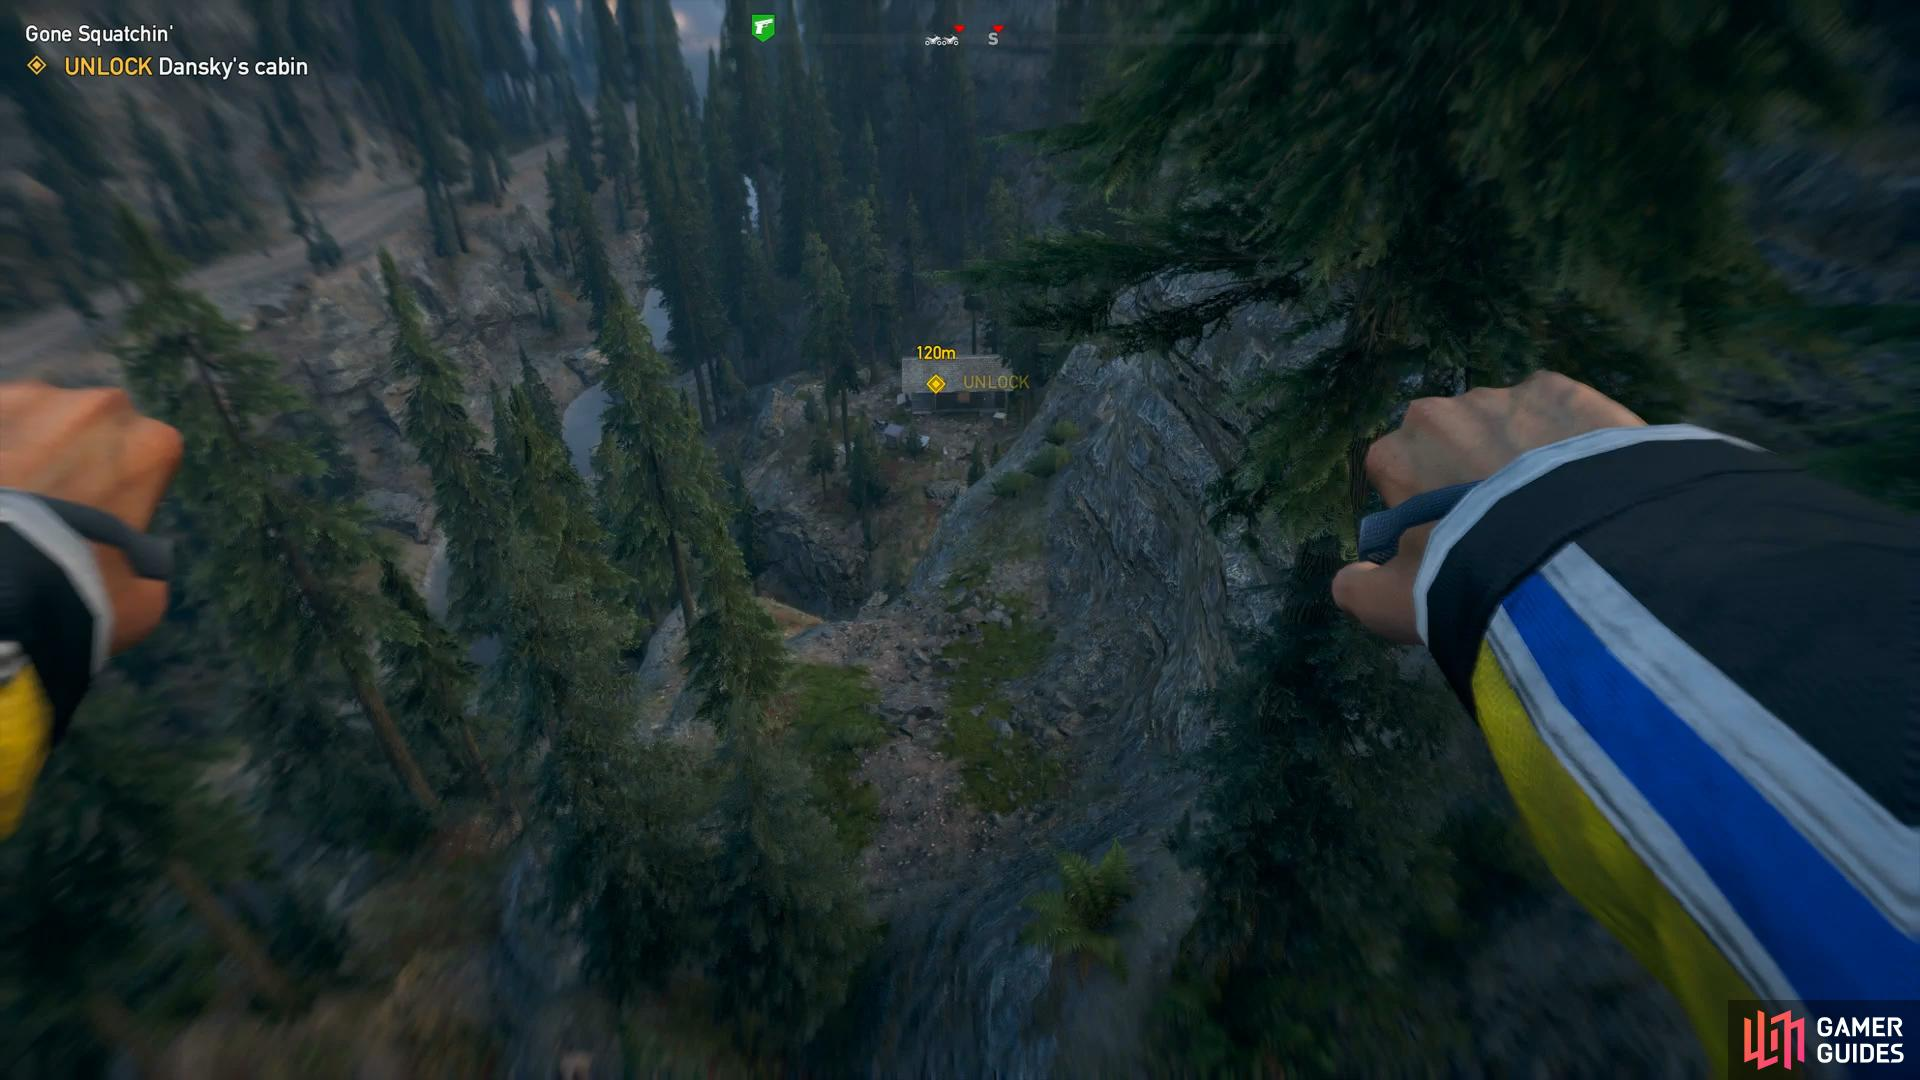 jump off the cliff in the direction of the cabin and use the wingsuit or parachute